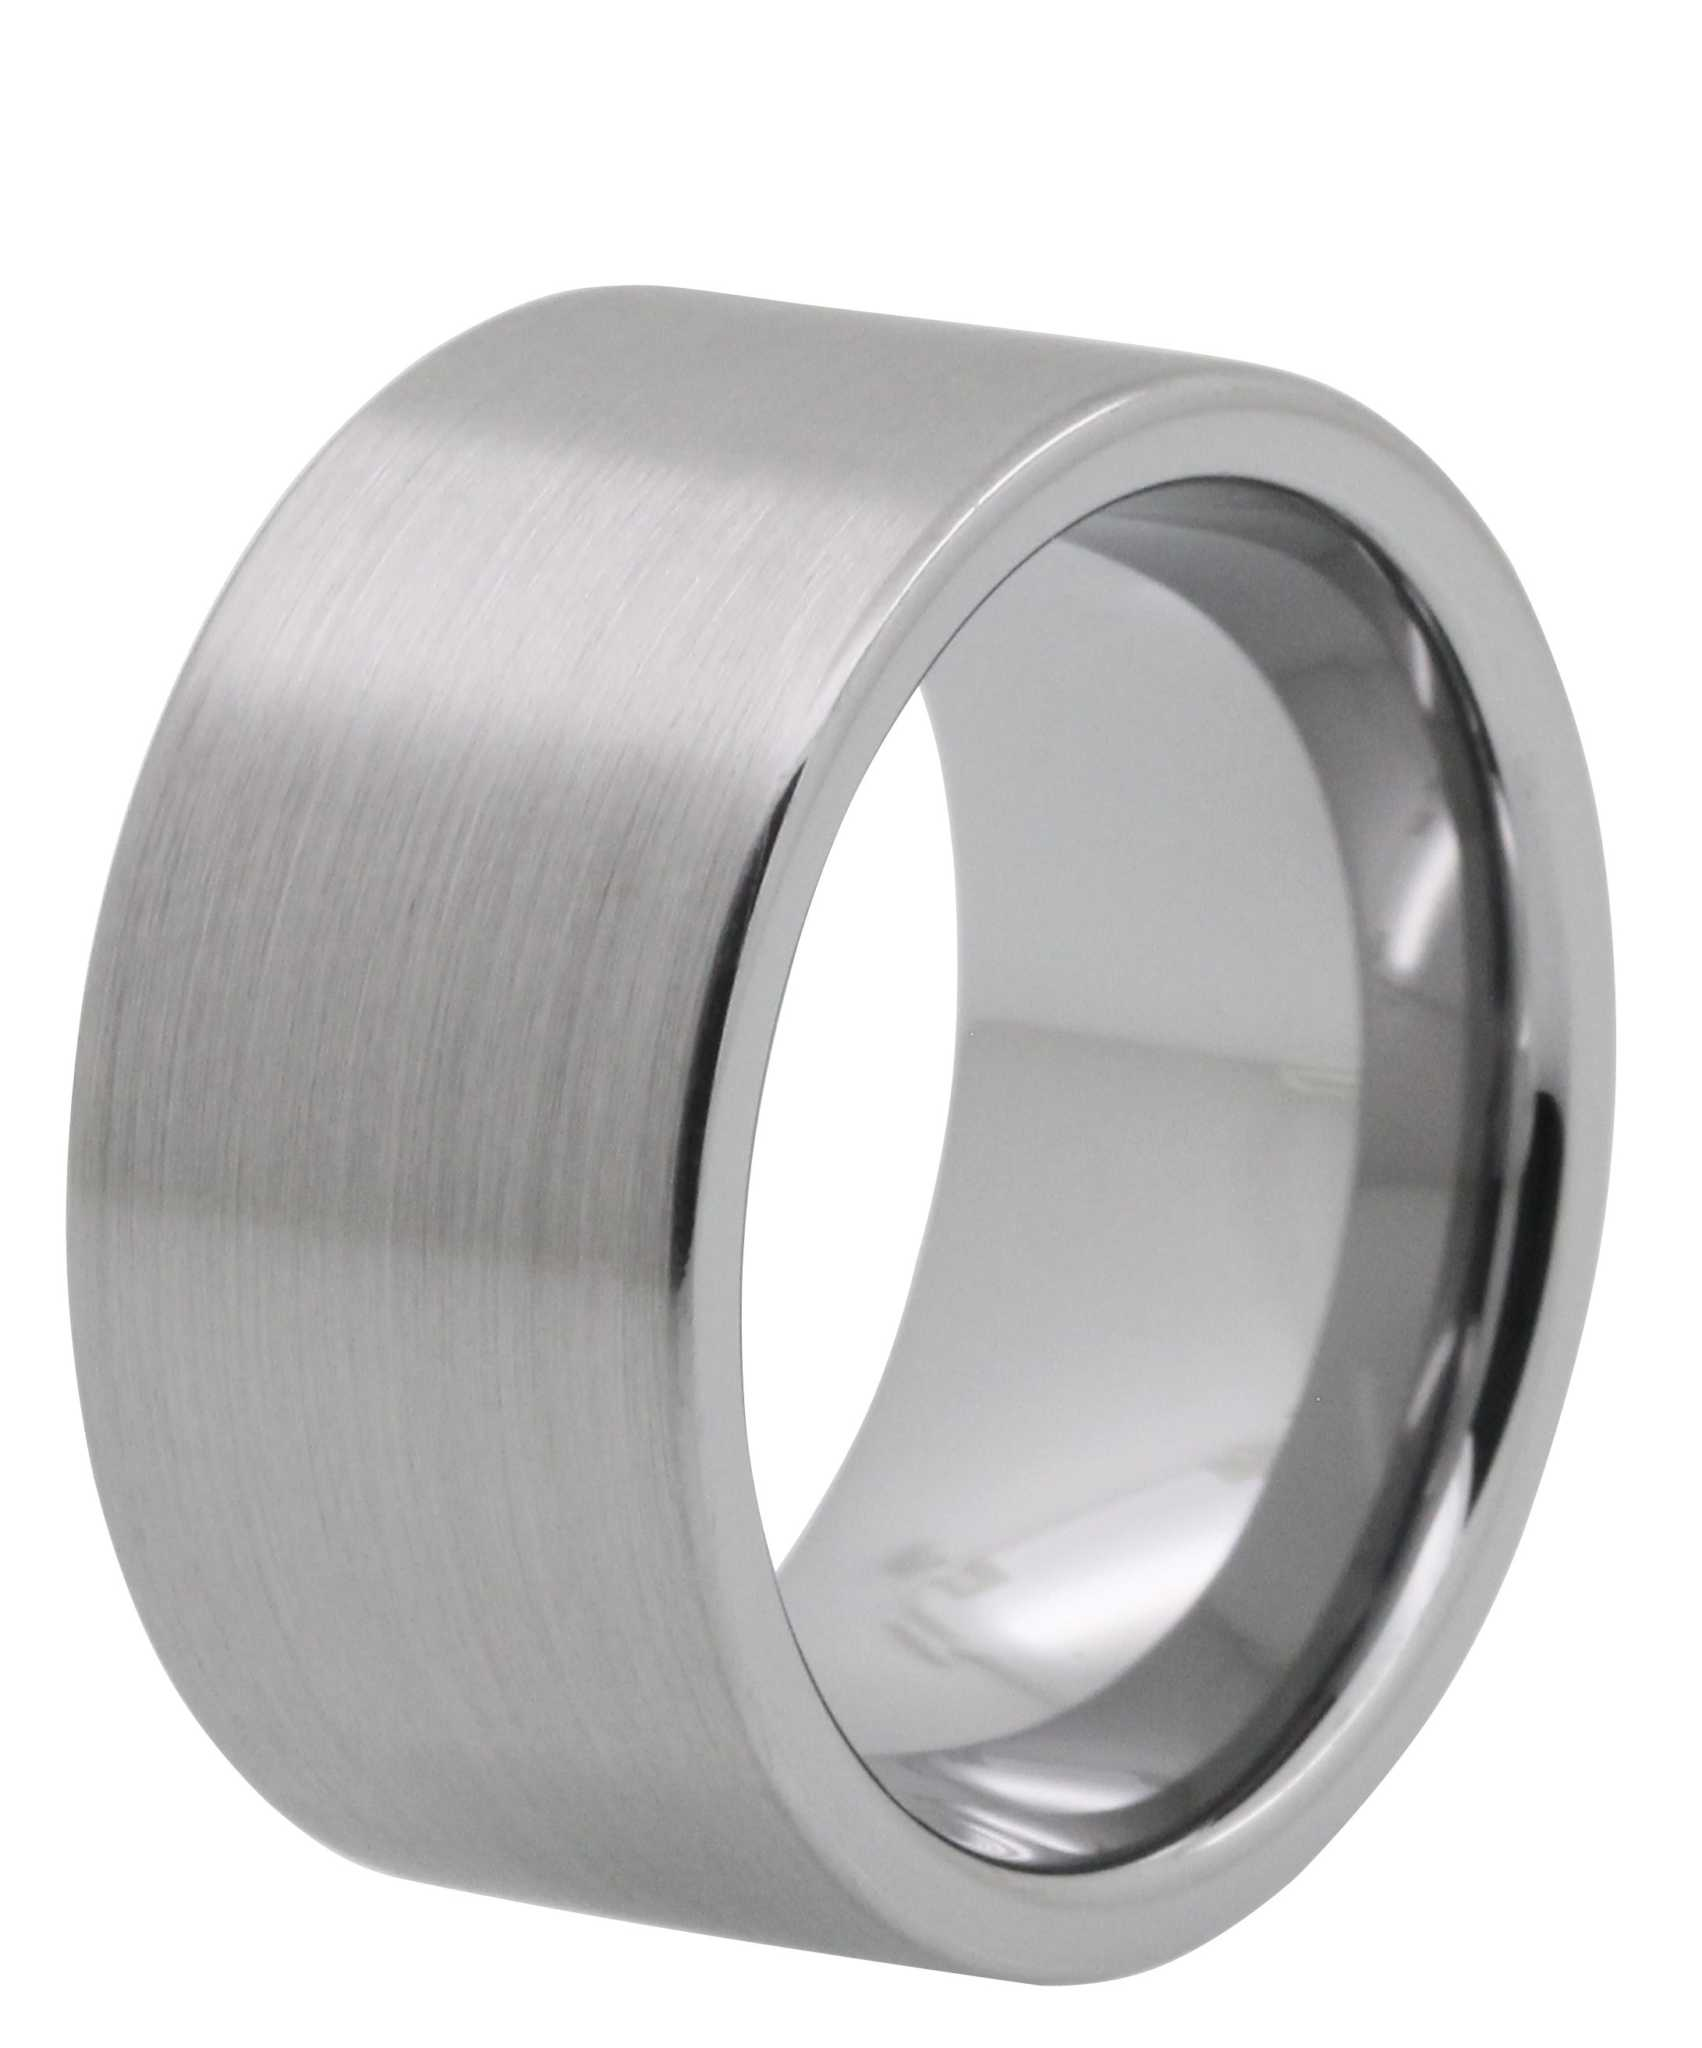 tungstenrings tungsten carbide wedding band 12MM Brushed Tayloright Tungsten Carbide Ring